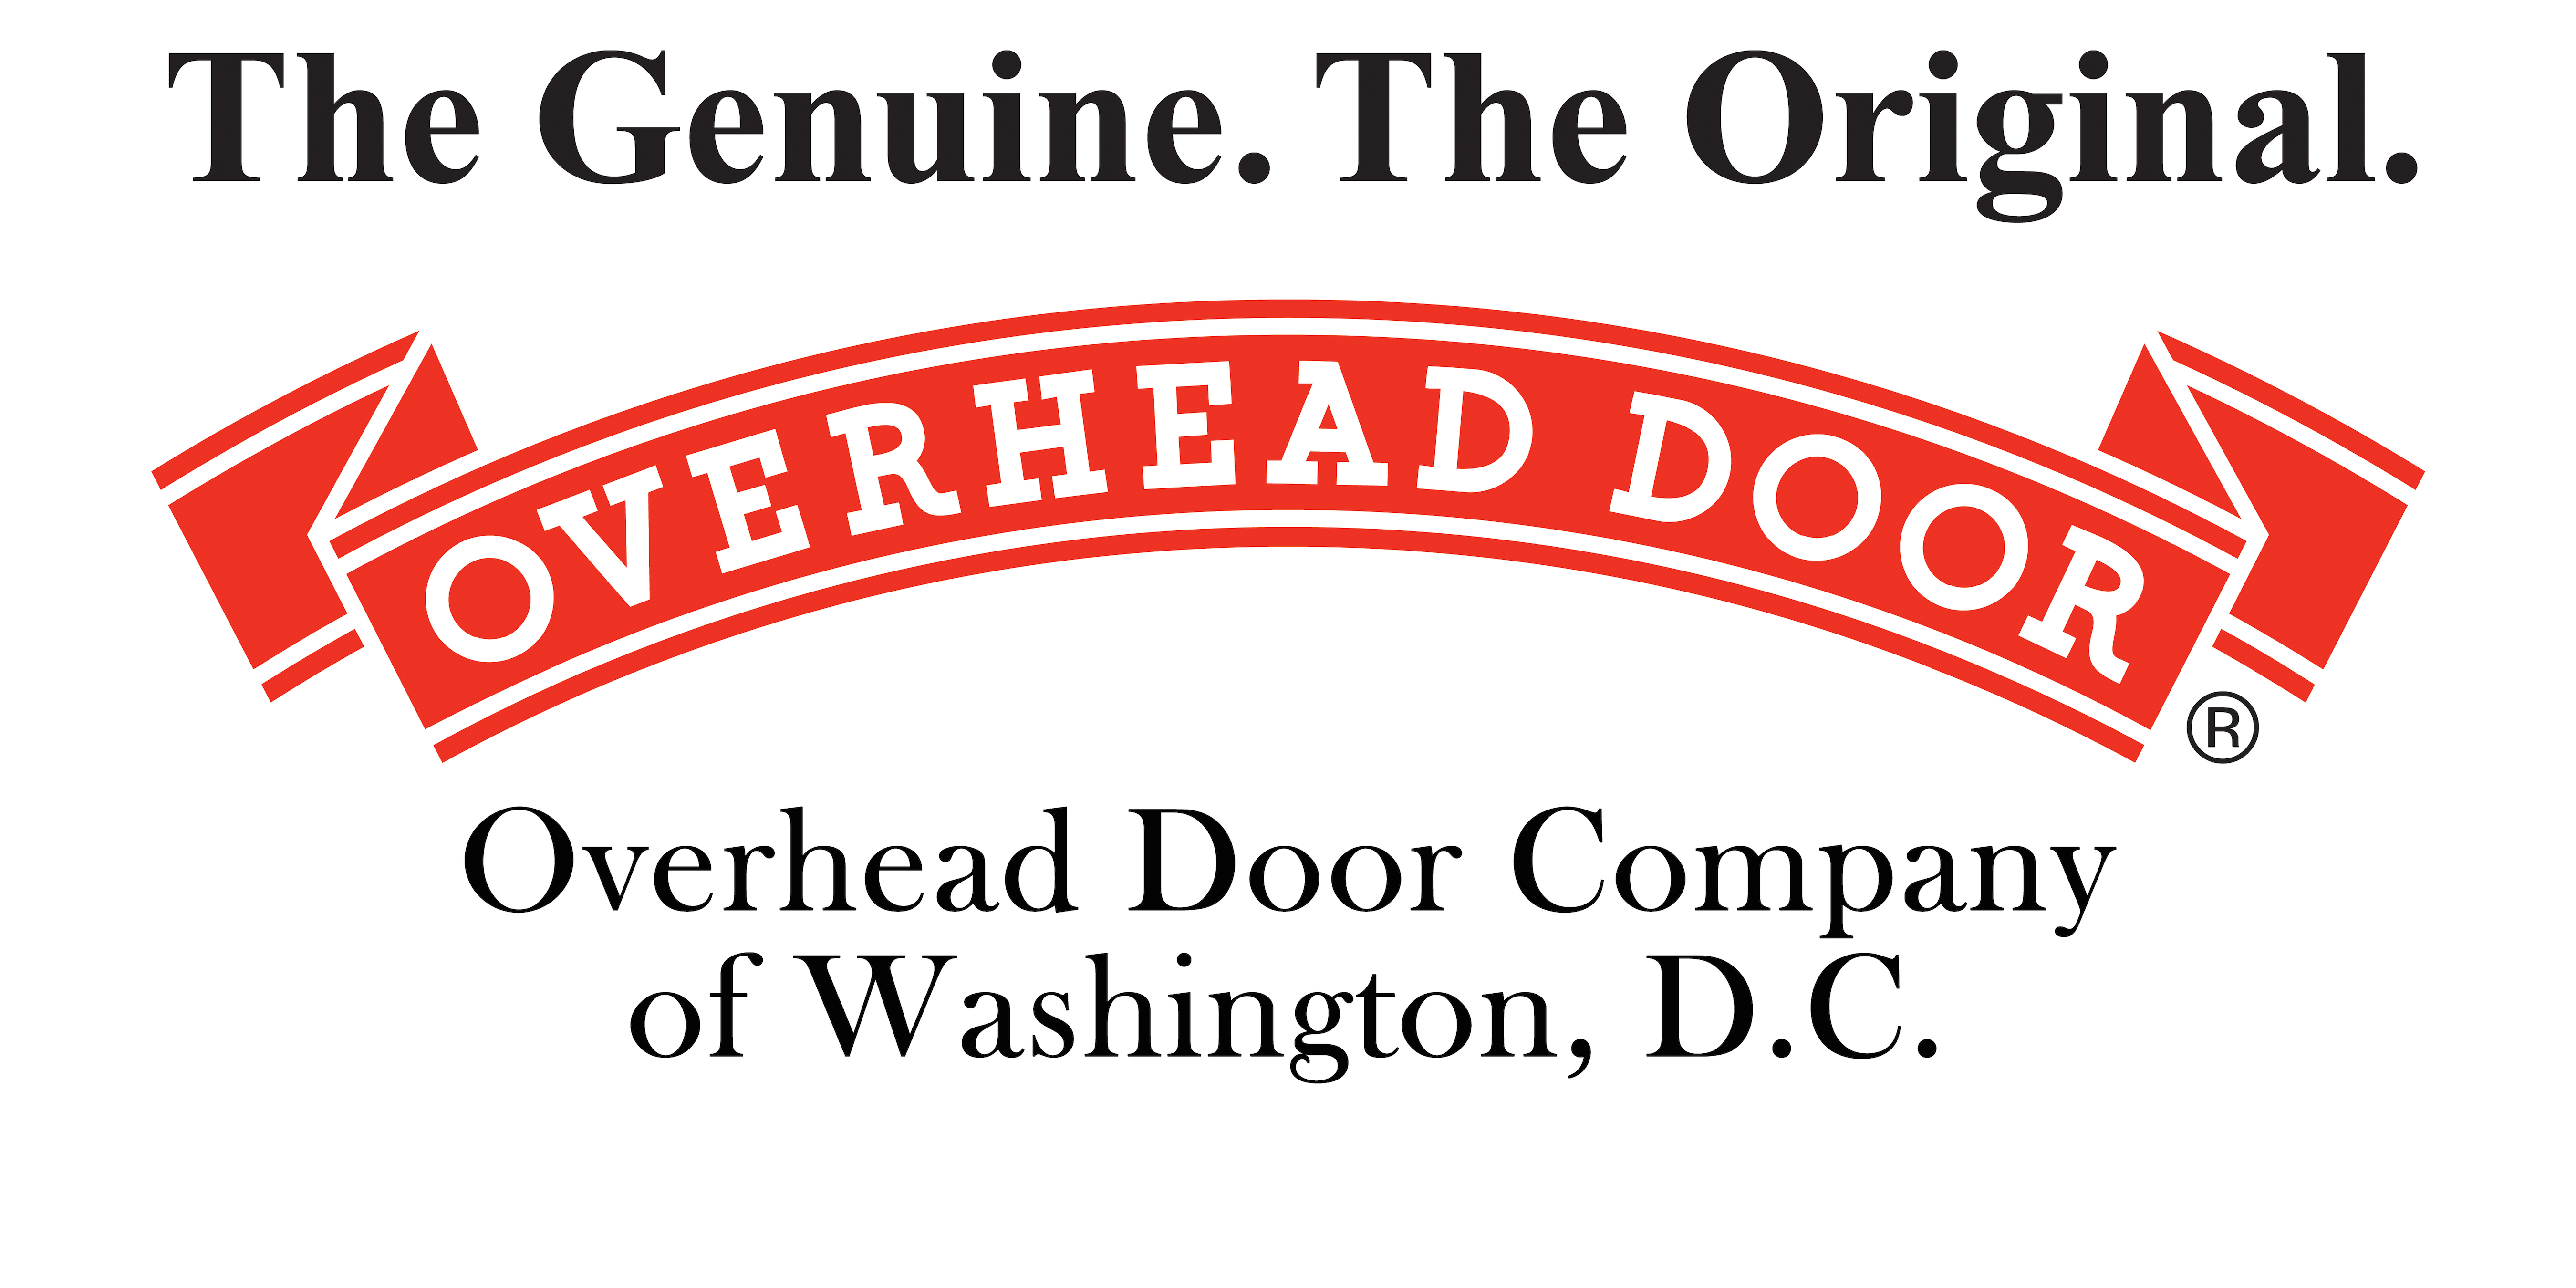 Charmant Overhead Door Company Of Washington DC 6841 Distribution Dr, Beltsville, MD  20705   YP.com